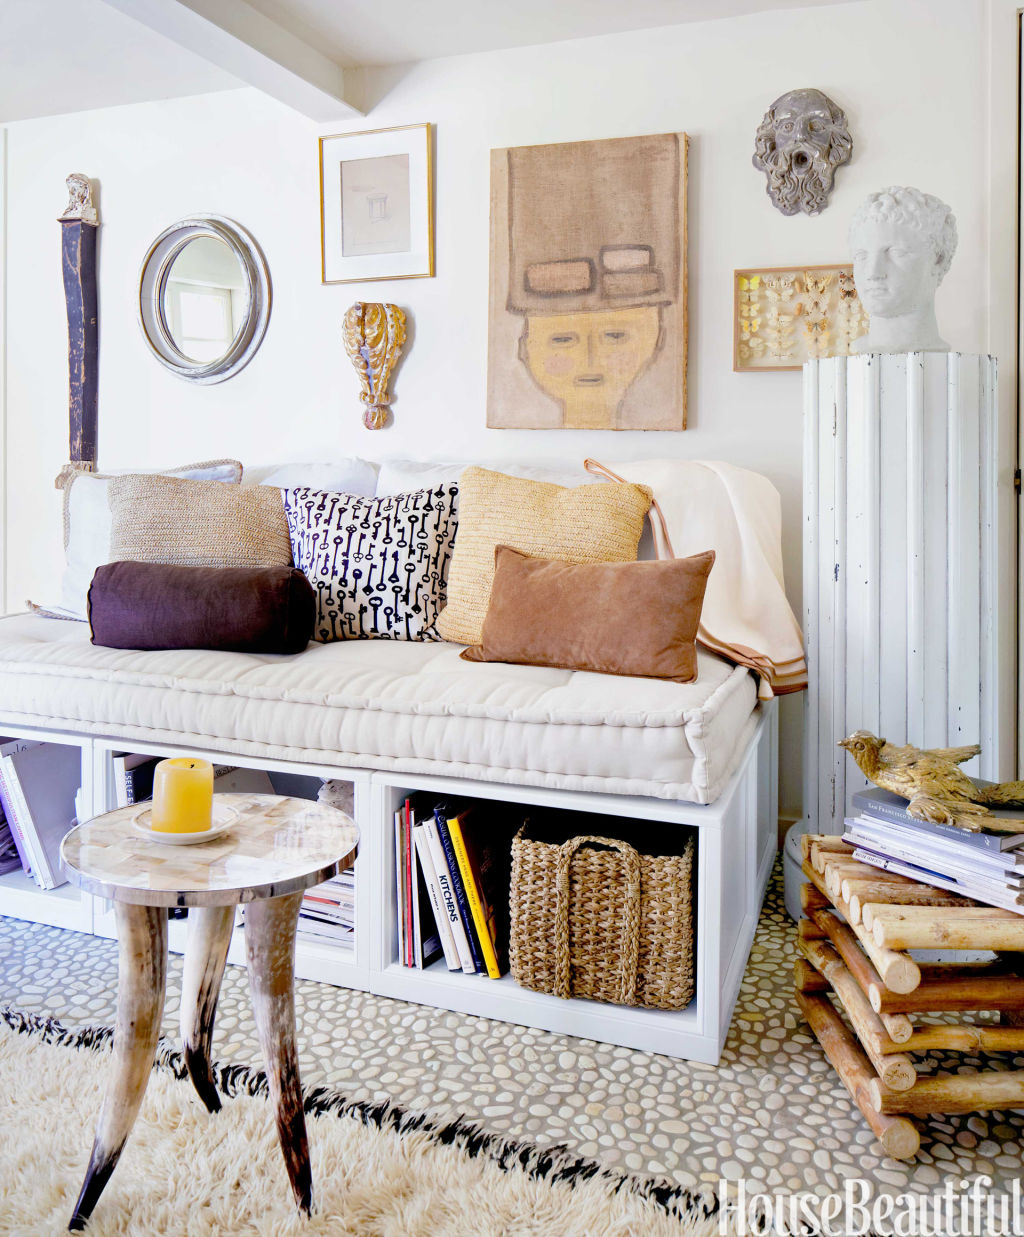 Small Space Design Ideas - How to Make the Most of a Small Space